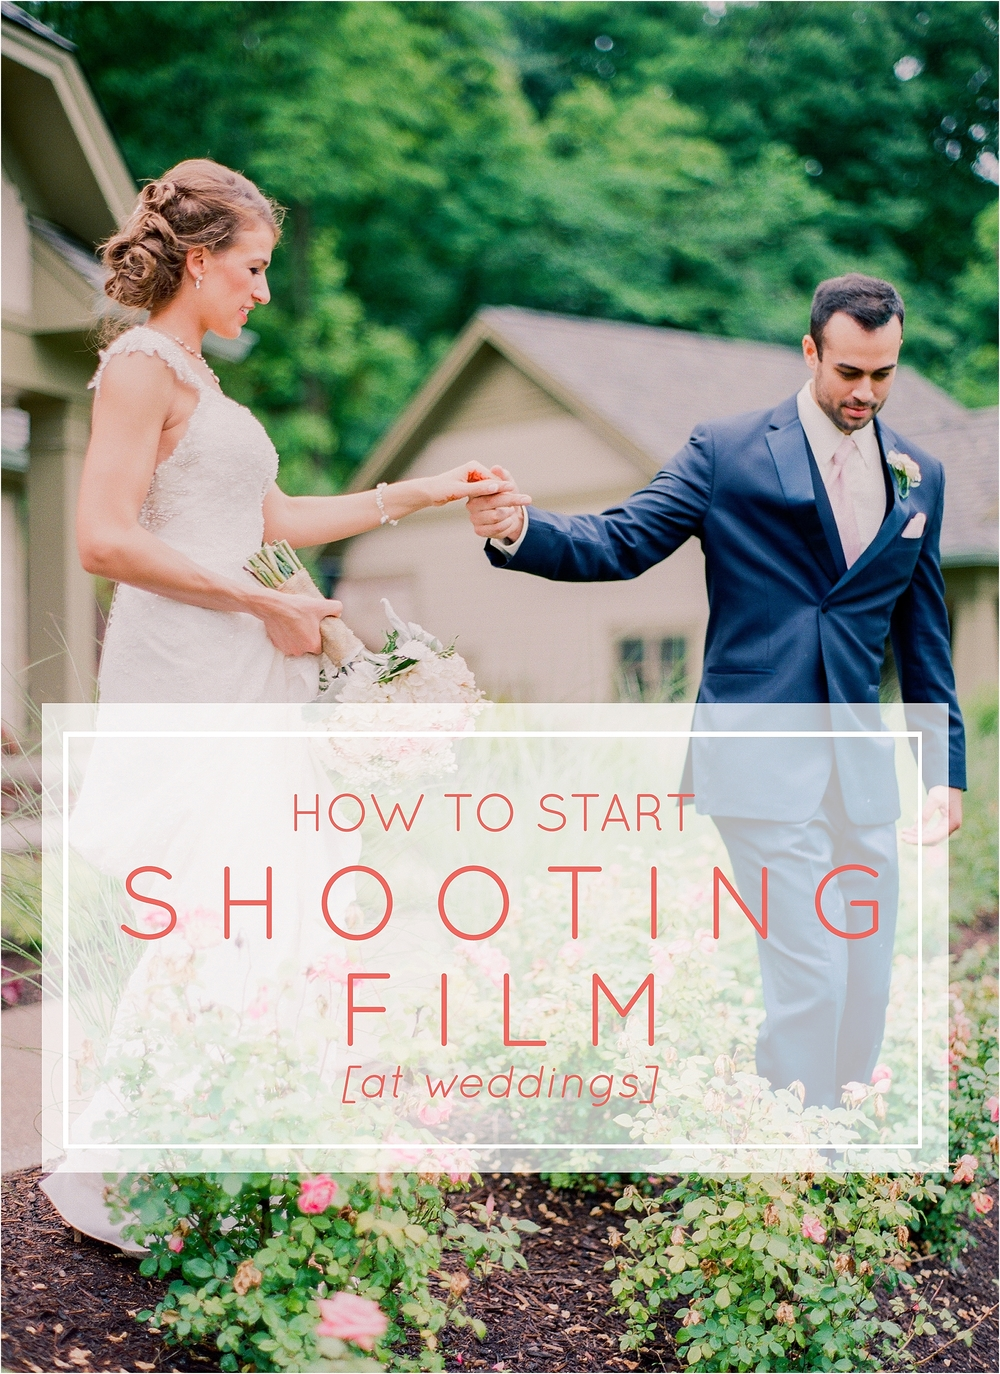 How to Start Shooting Film at Weddings - The Jordan Brittley Blog